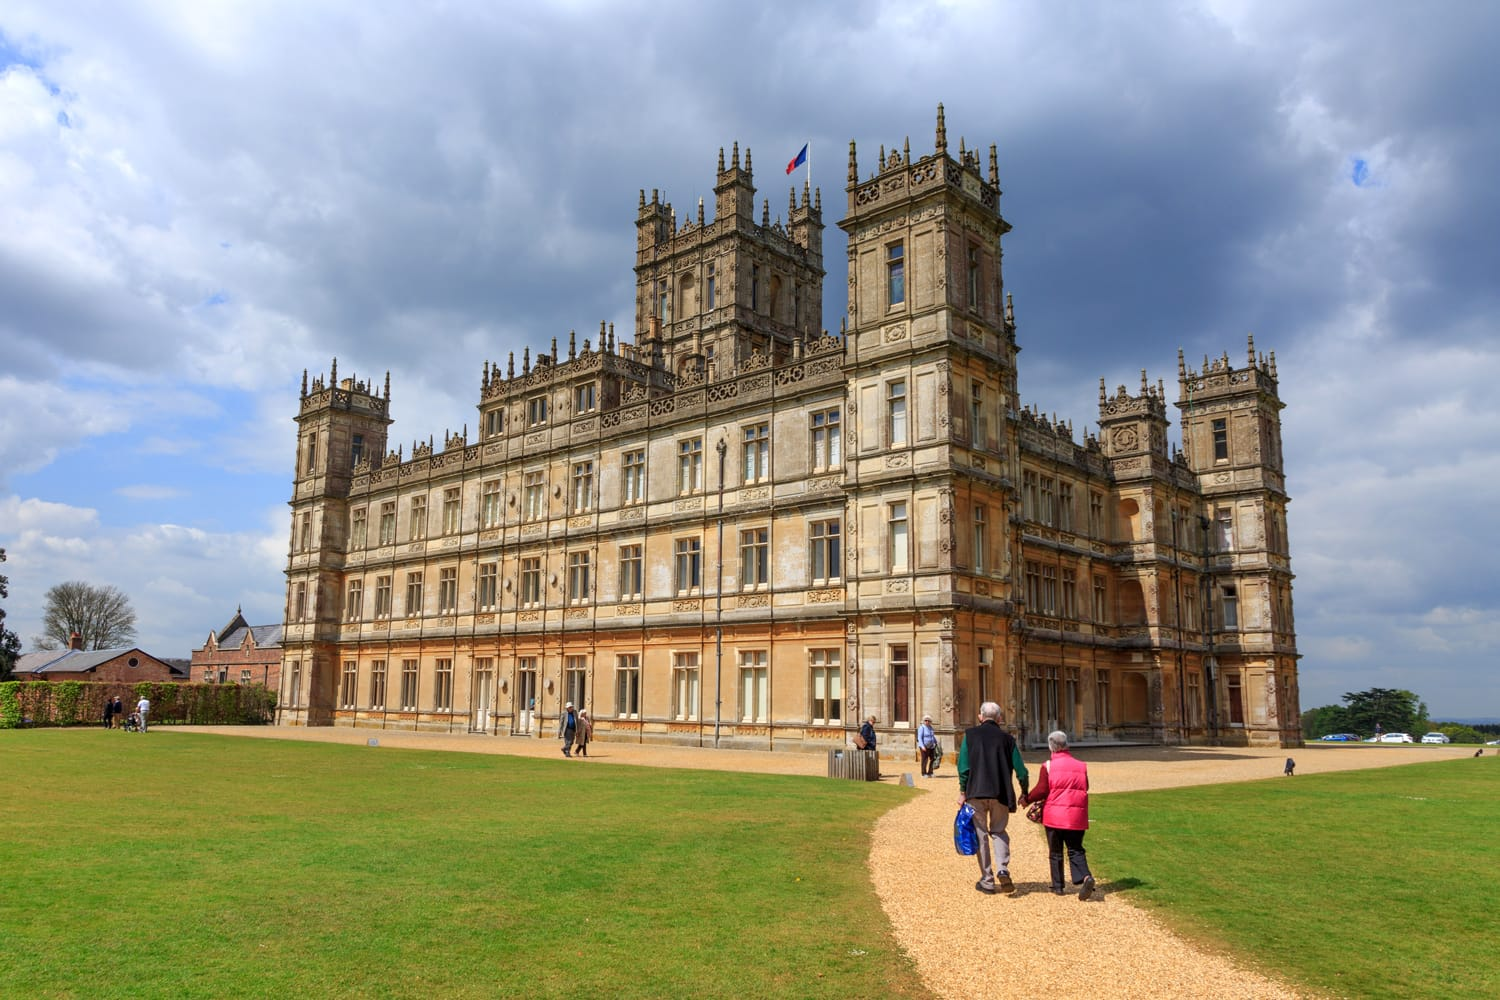 Highclere Castle. Jacobethan style country house, seat of the Earl of Carnarvon. Setting of Downton Abbey.